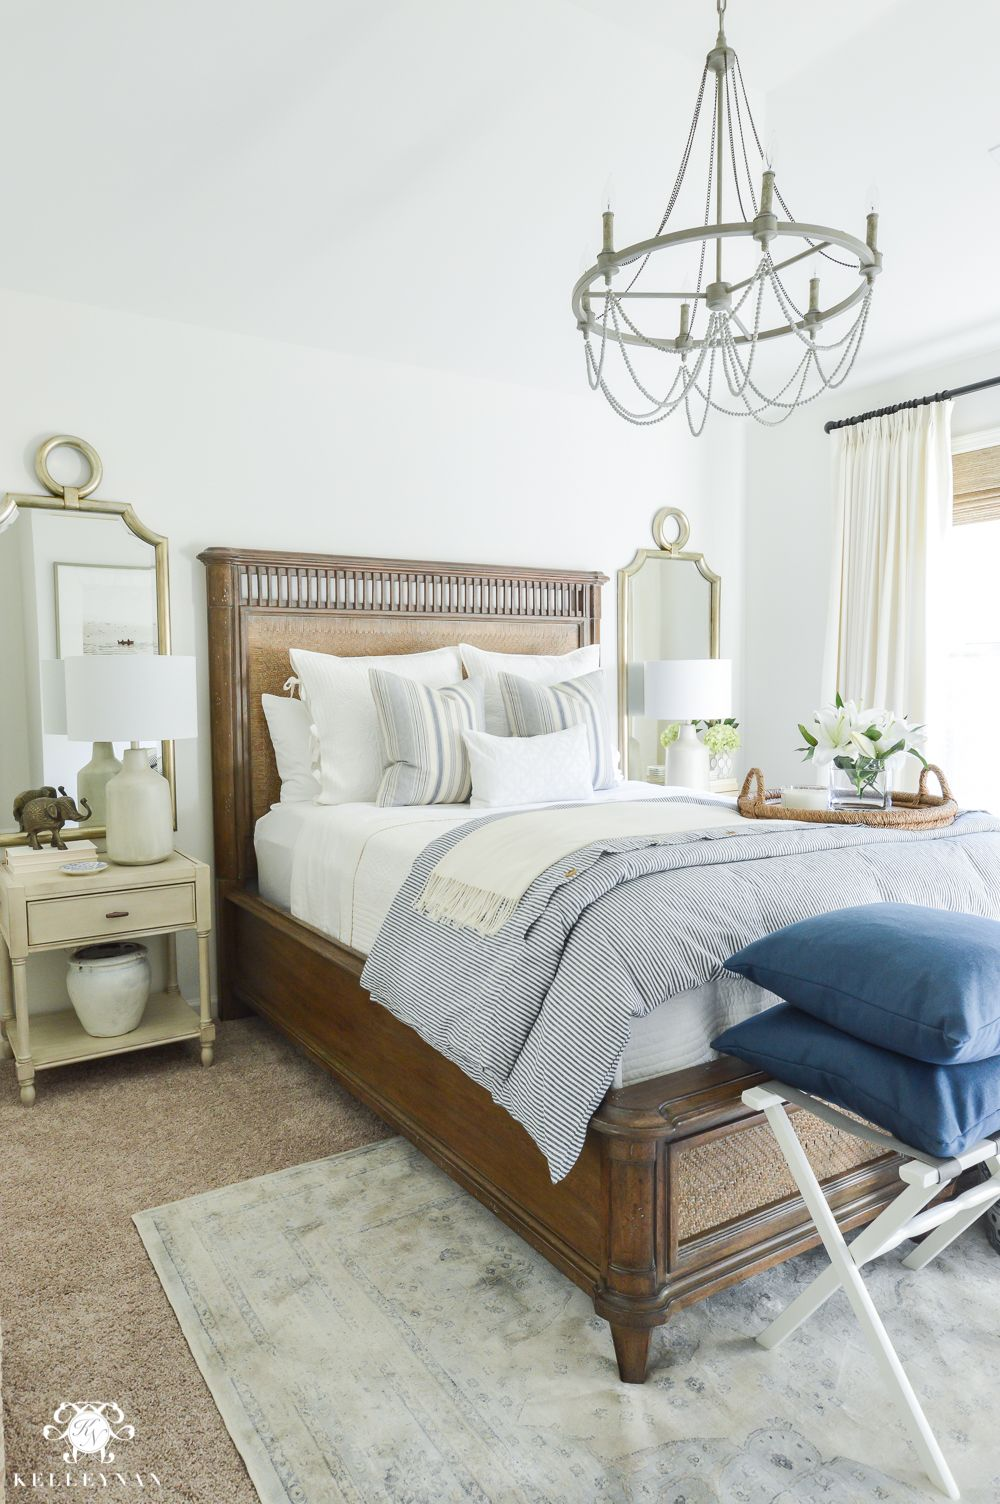 Blue Bedroom Furniture: Kelley Nan: One Room Challenge- Classic Blue And White